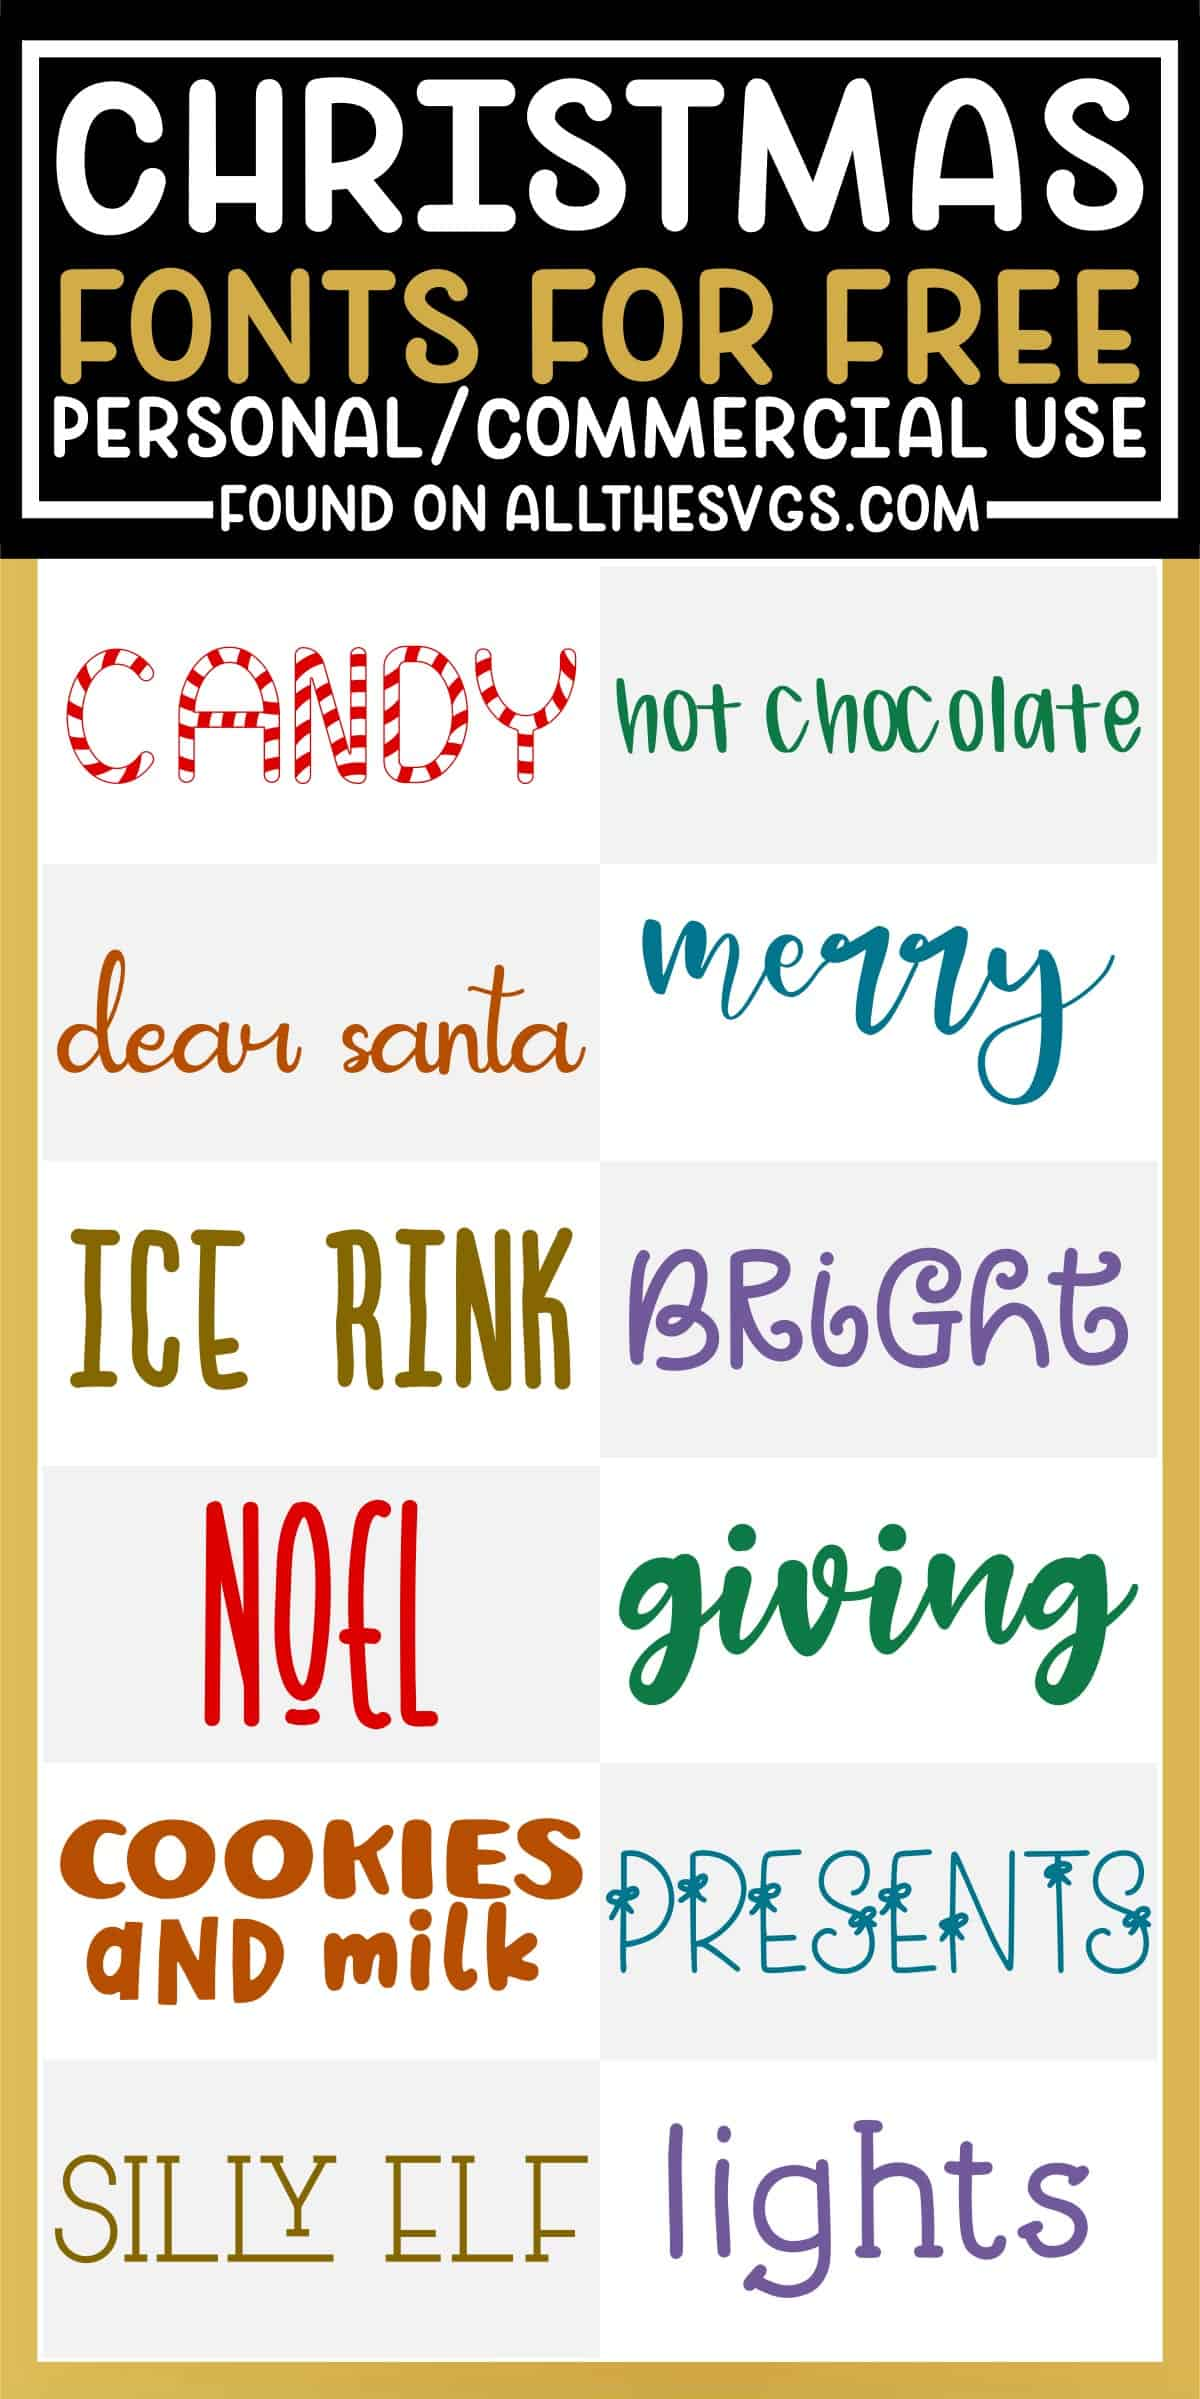 showcase of 12 best free christmas winter fonts for commercial use.